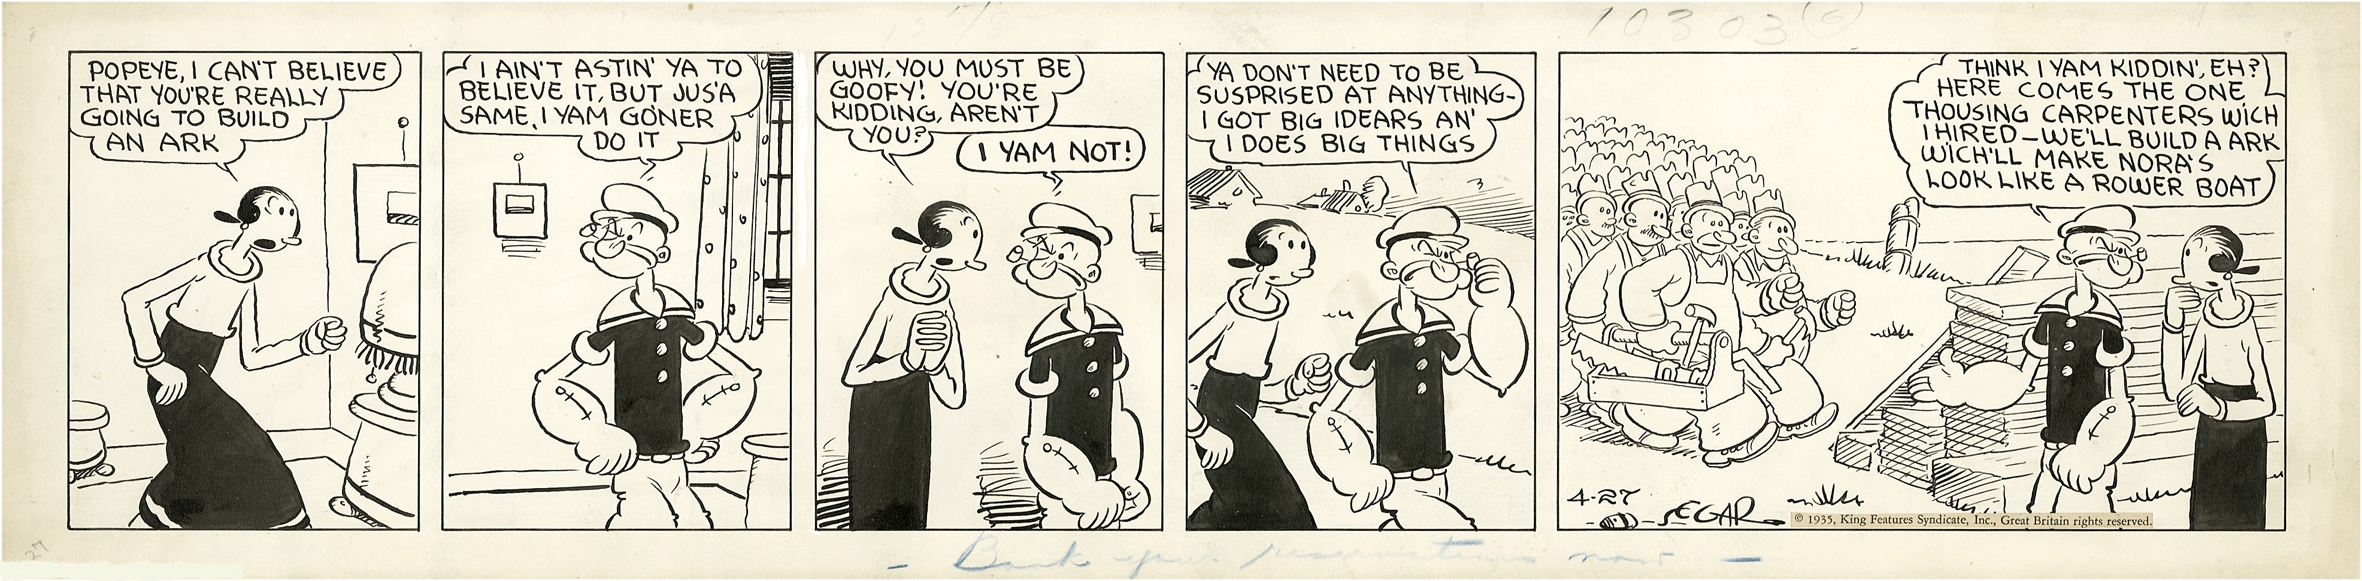 Elzie Segar Popeye 1935 daily Comic Art